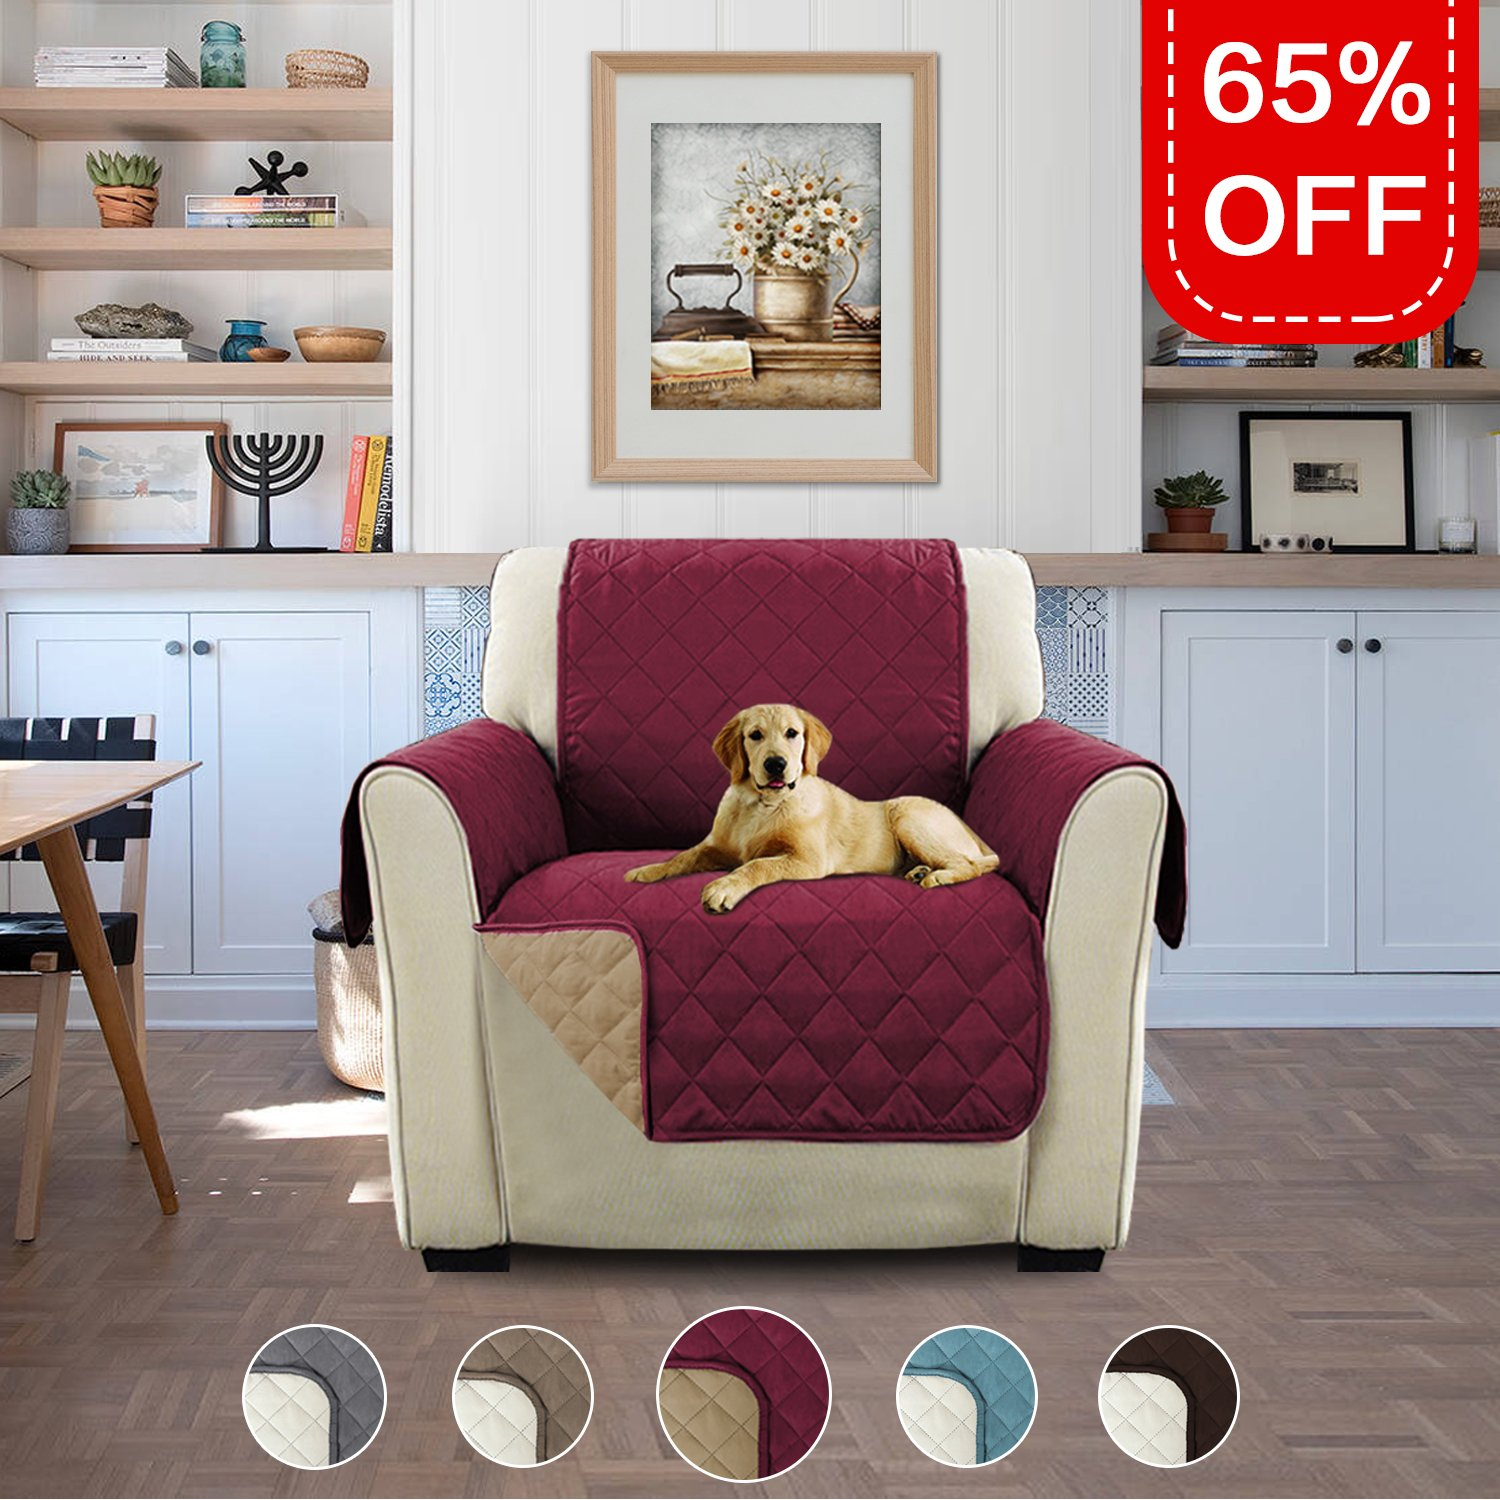 Cheap Cover For Recliner Sofa Find Cover For Recliner Sofa Deals On